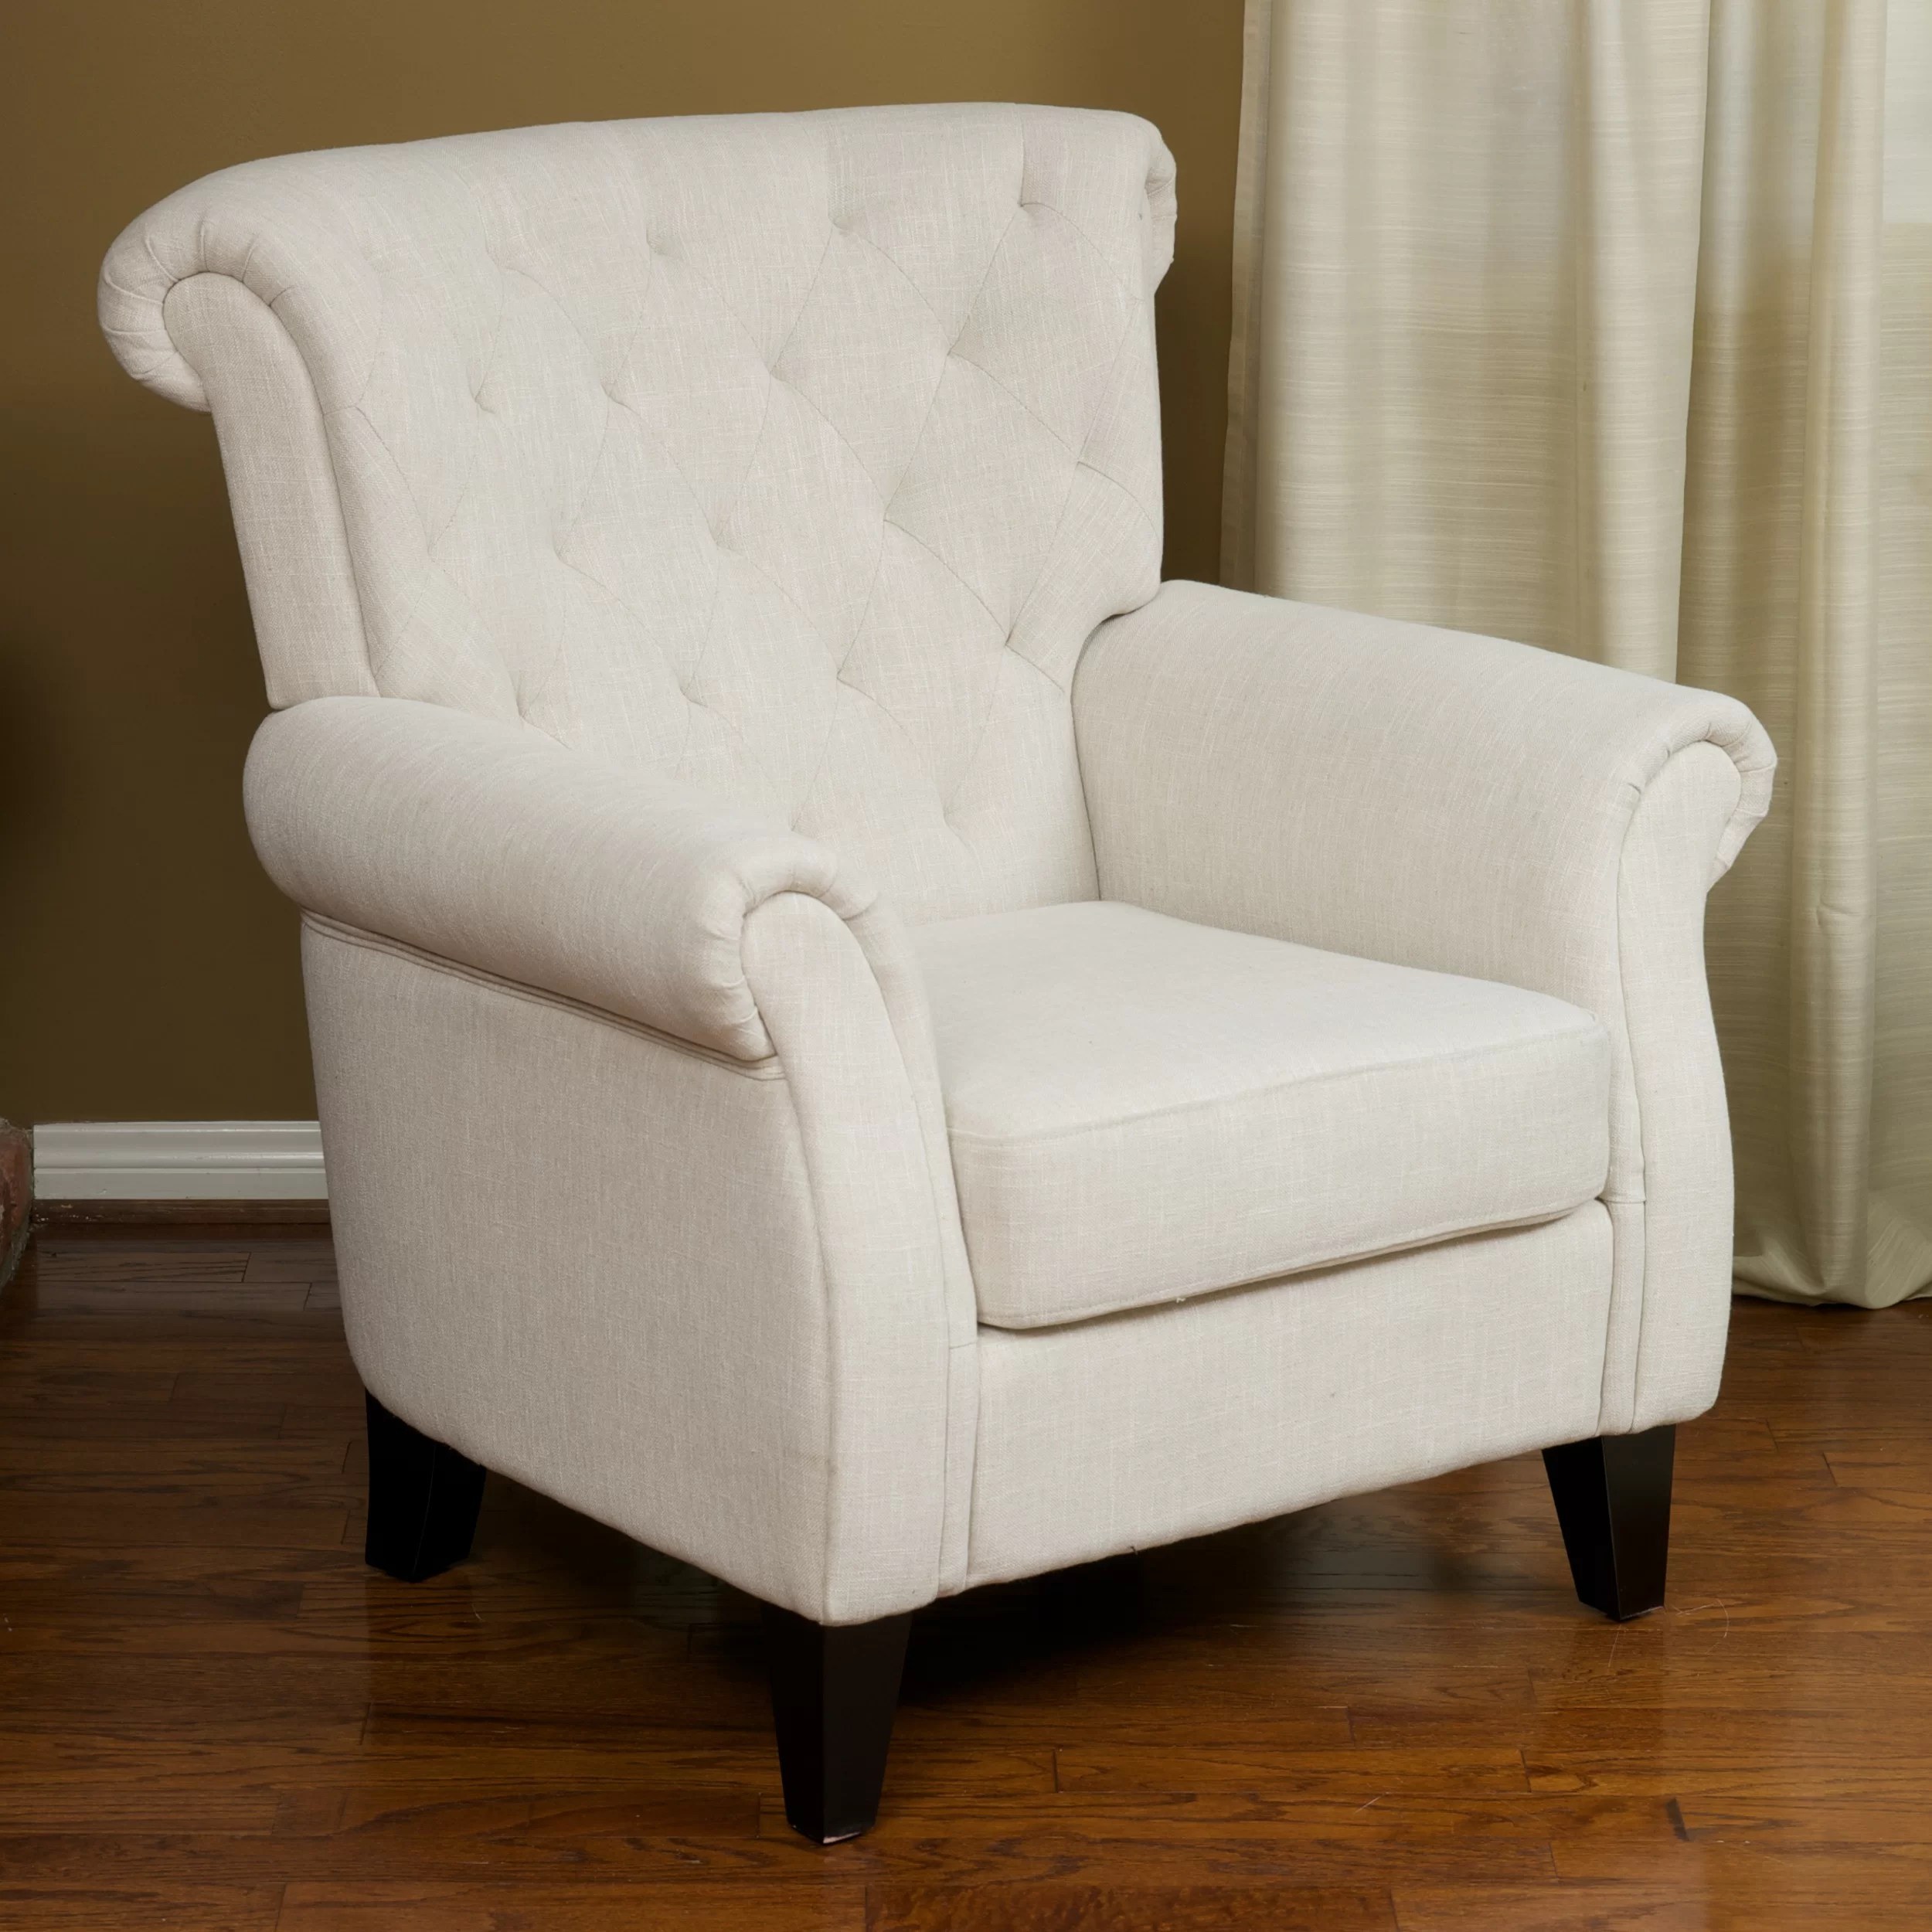 Armed Accent Chairs Alcott Hill Jaymee Tufted Upholstered Arm Chair And Reviews